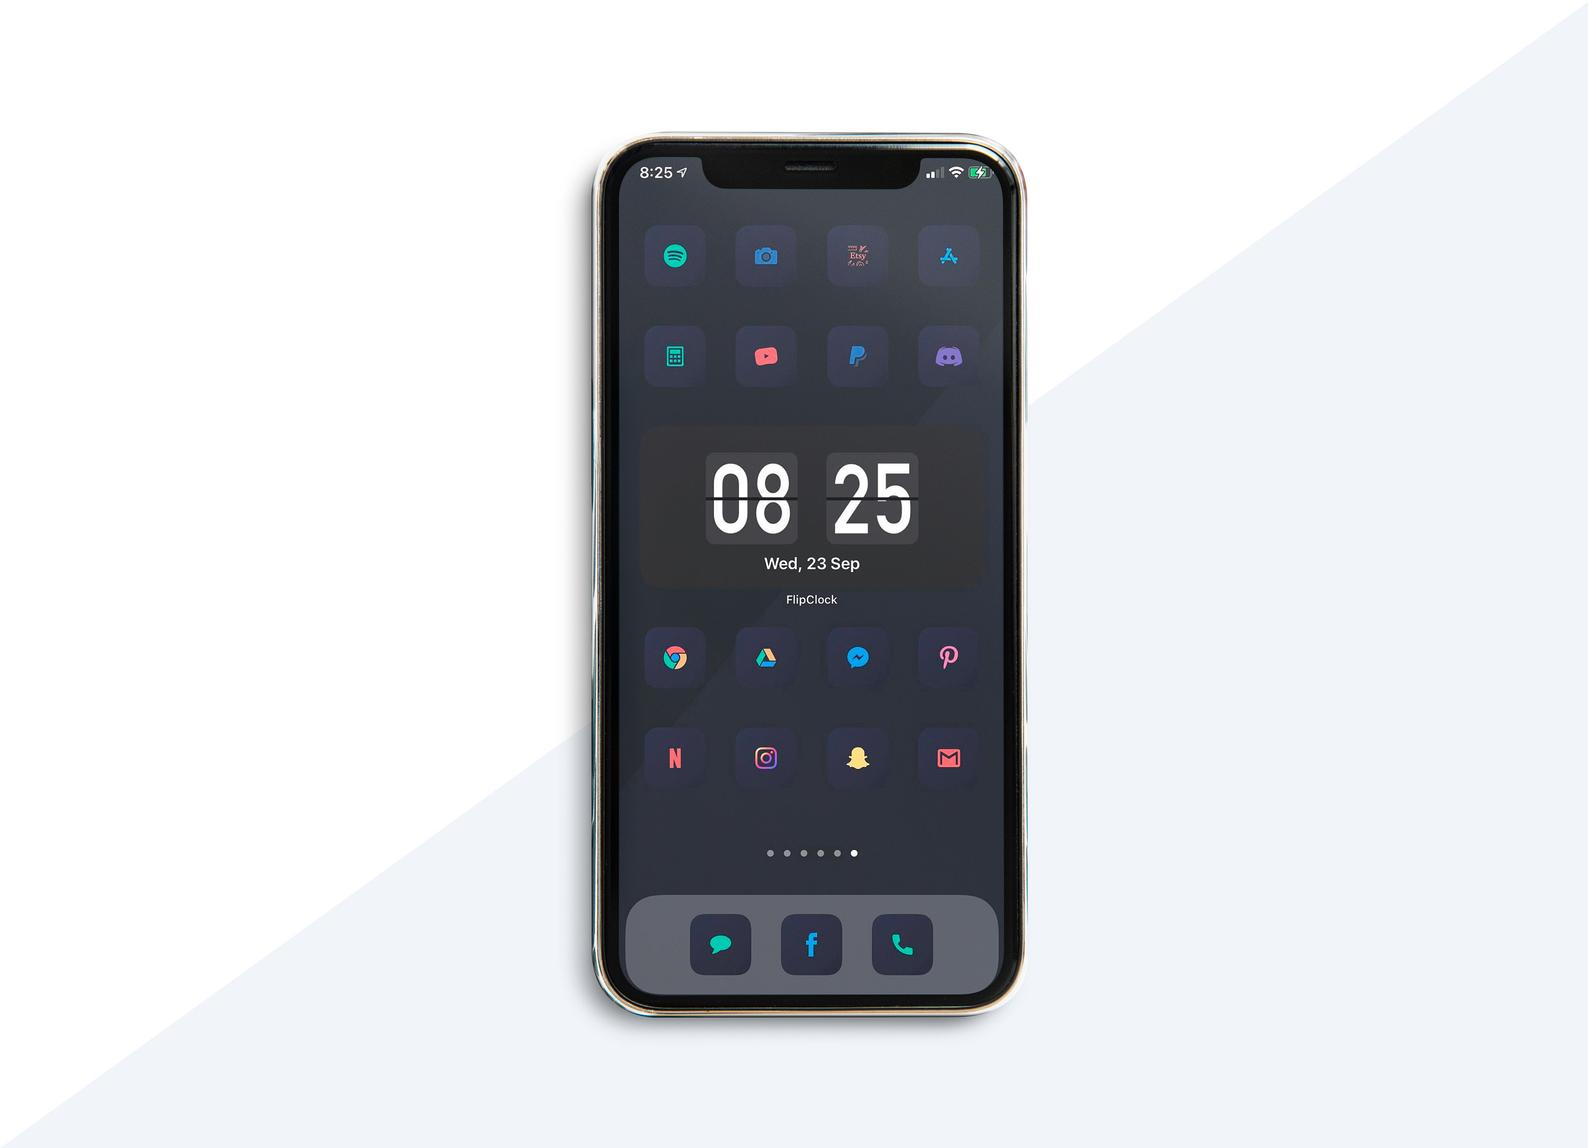 iOS 14 Aesthetic Icon Set Dark Color Icons 48 icons Icons image 0 iOS 14 Aesthetic Icon Set Dark Color Icons 48 icons Icons image 1 iOS 14 Aesthetic Icon Set Dark Color Icons 48 icons Icons image 2 iOS 14 Aesthetic Icon Set Dark Color Icons 48 icons Icons image 3 iOS 14 Aesthetic Icon Set Dark Color Icons 48 icons Icons image 4 workwithstellio 293 sales 293 sales | 5 out of 5 stars iOS 14 Aesthetic Icon Set, Dark, Color